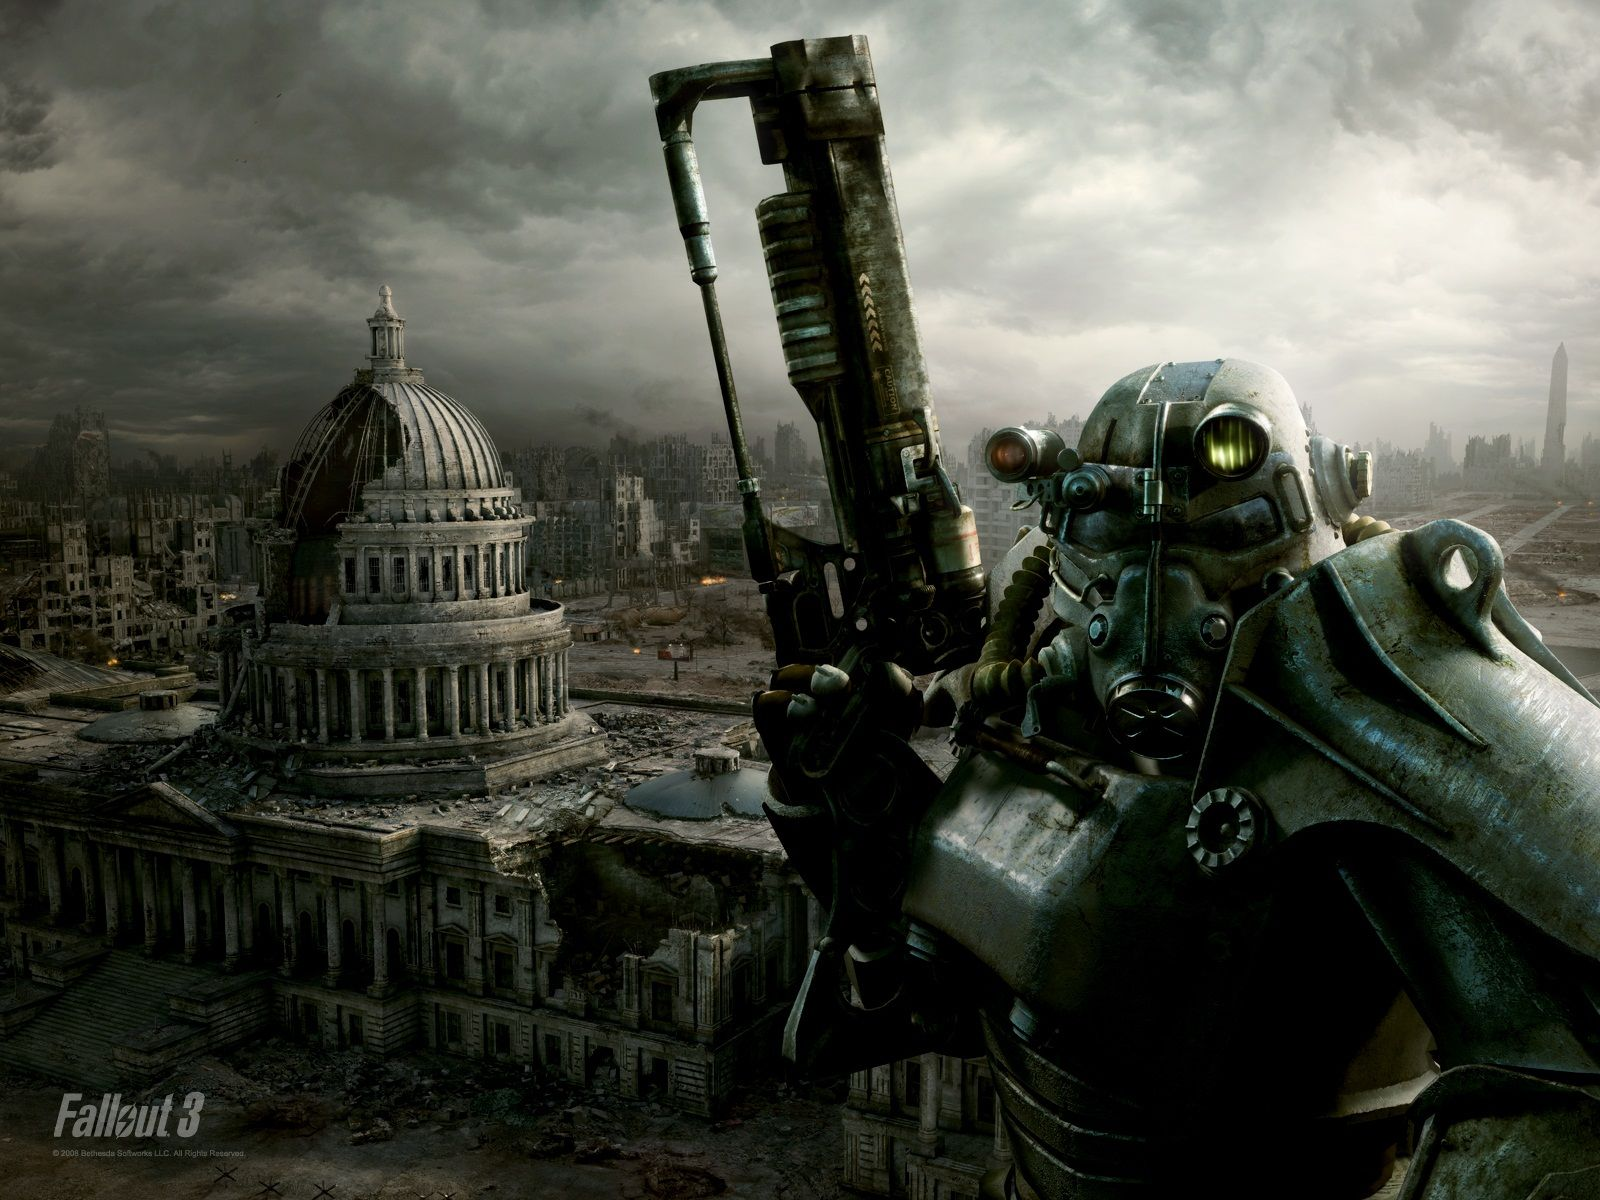 Promotional Image for Fallout 3 from Bethesda Softworks that